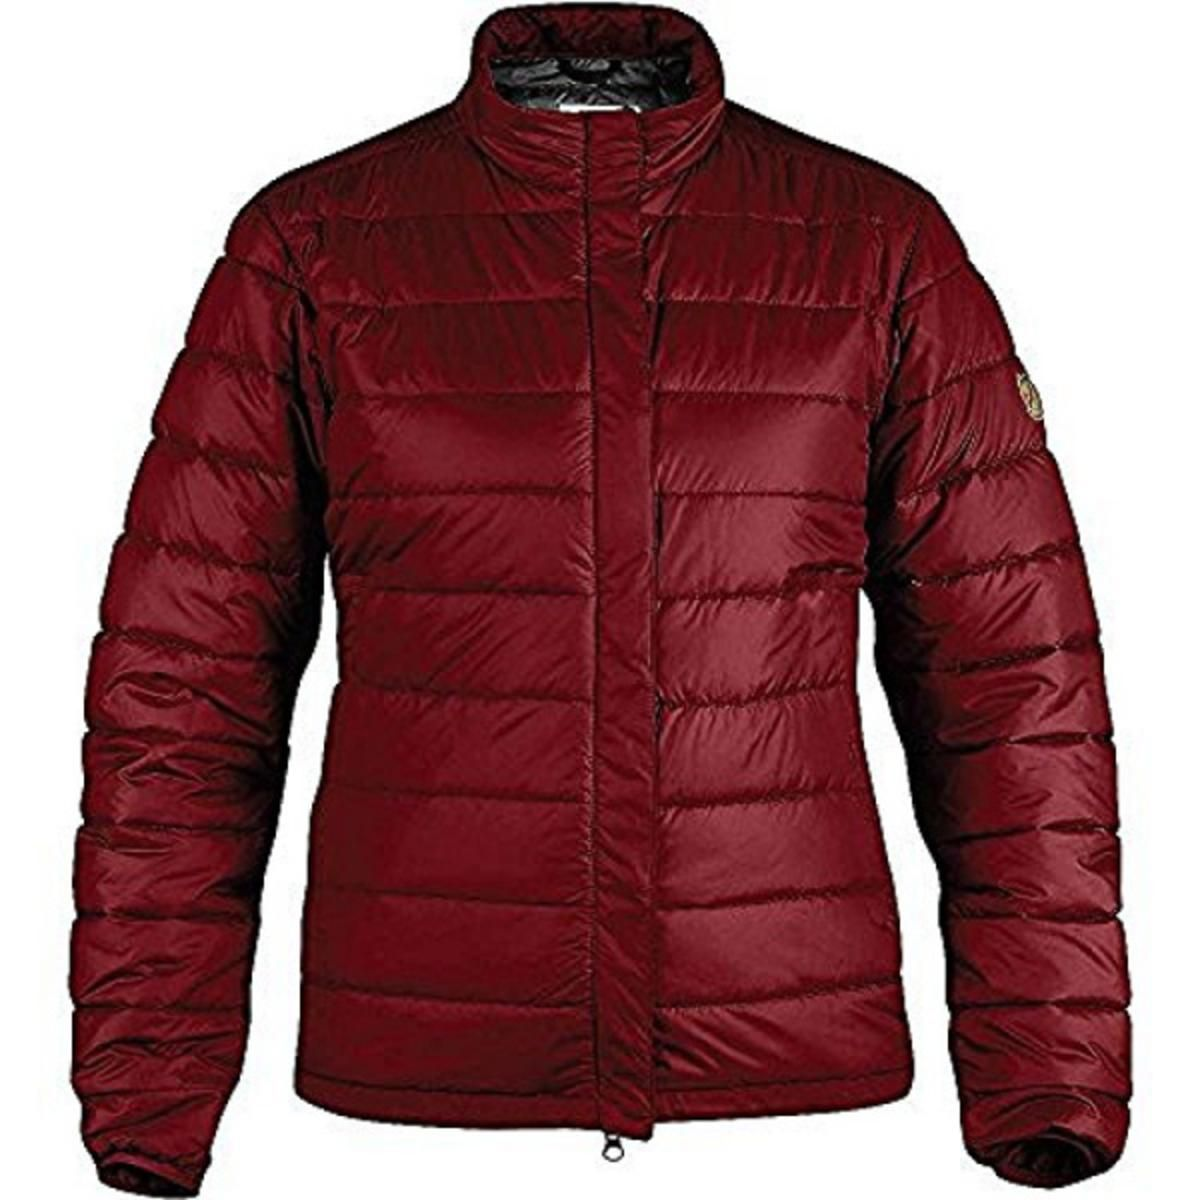 06a1bee9 FjallRaven Women's Keb Padded Jacket - The Warming Store